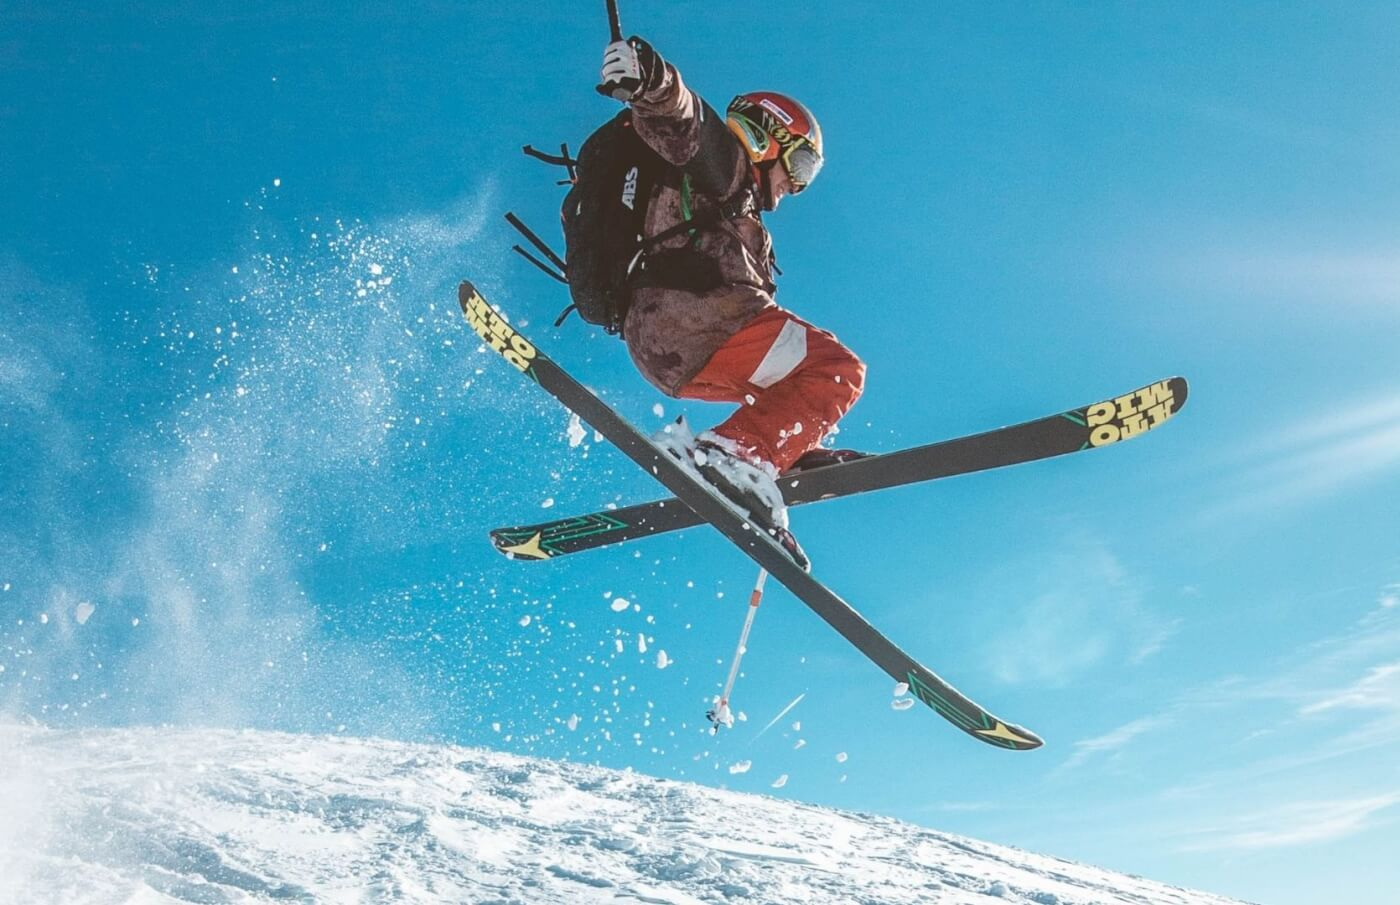 A skier doing a trick.